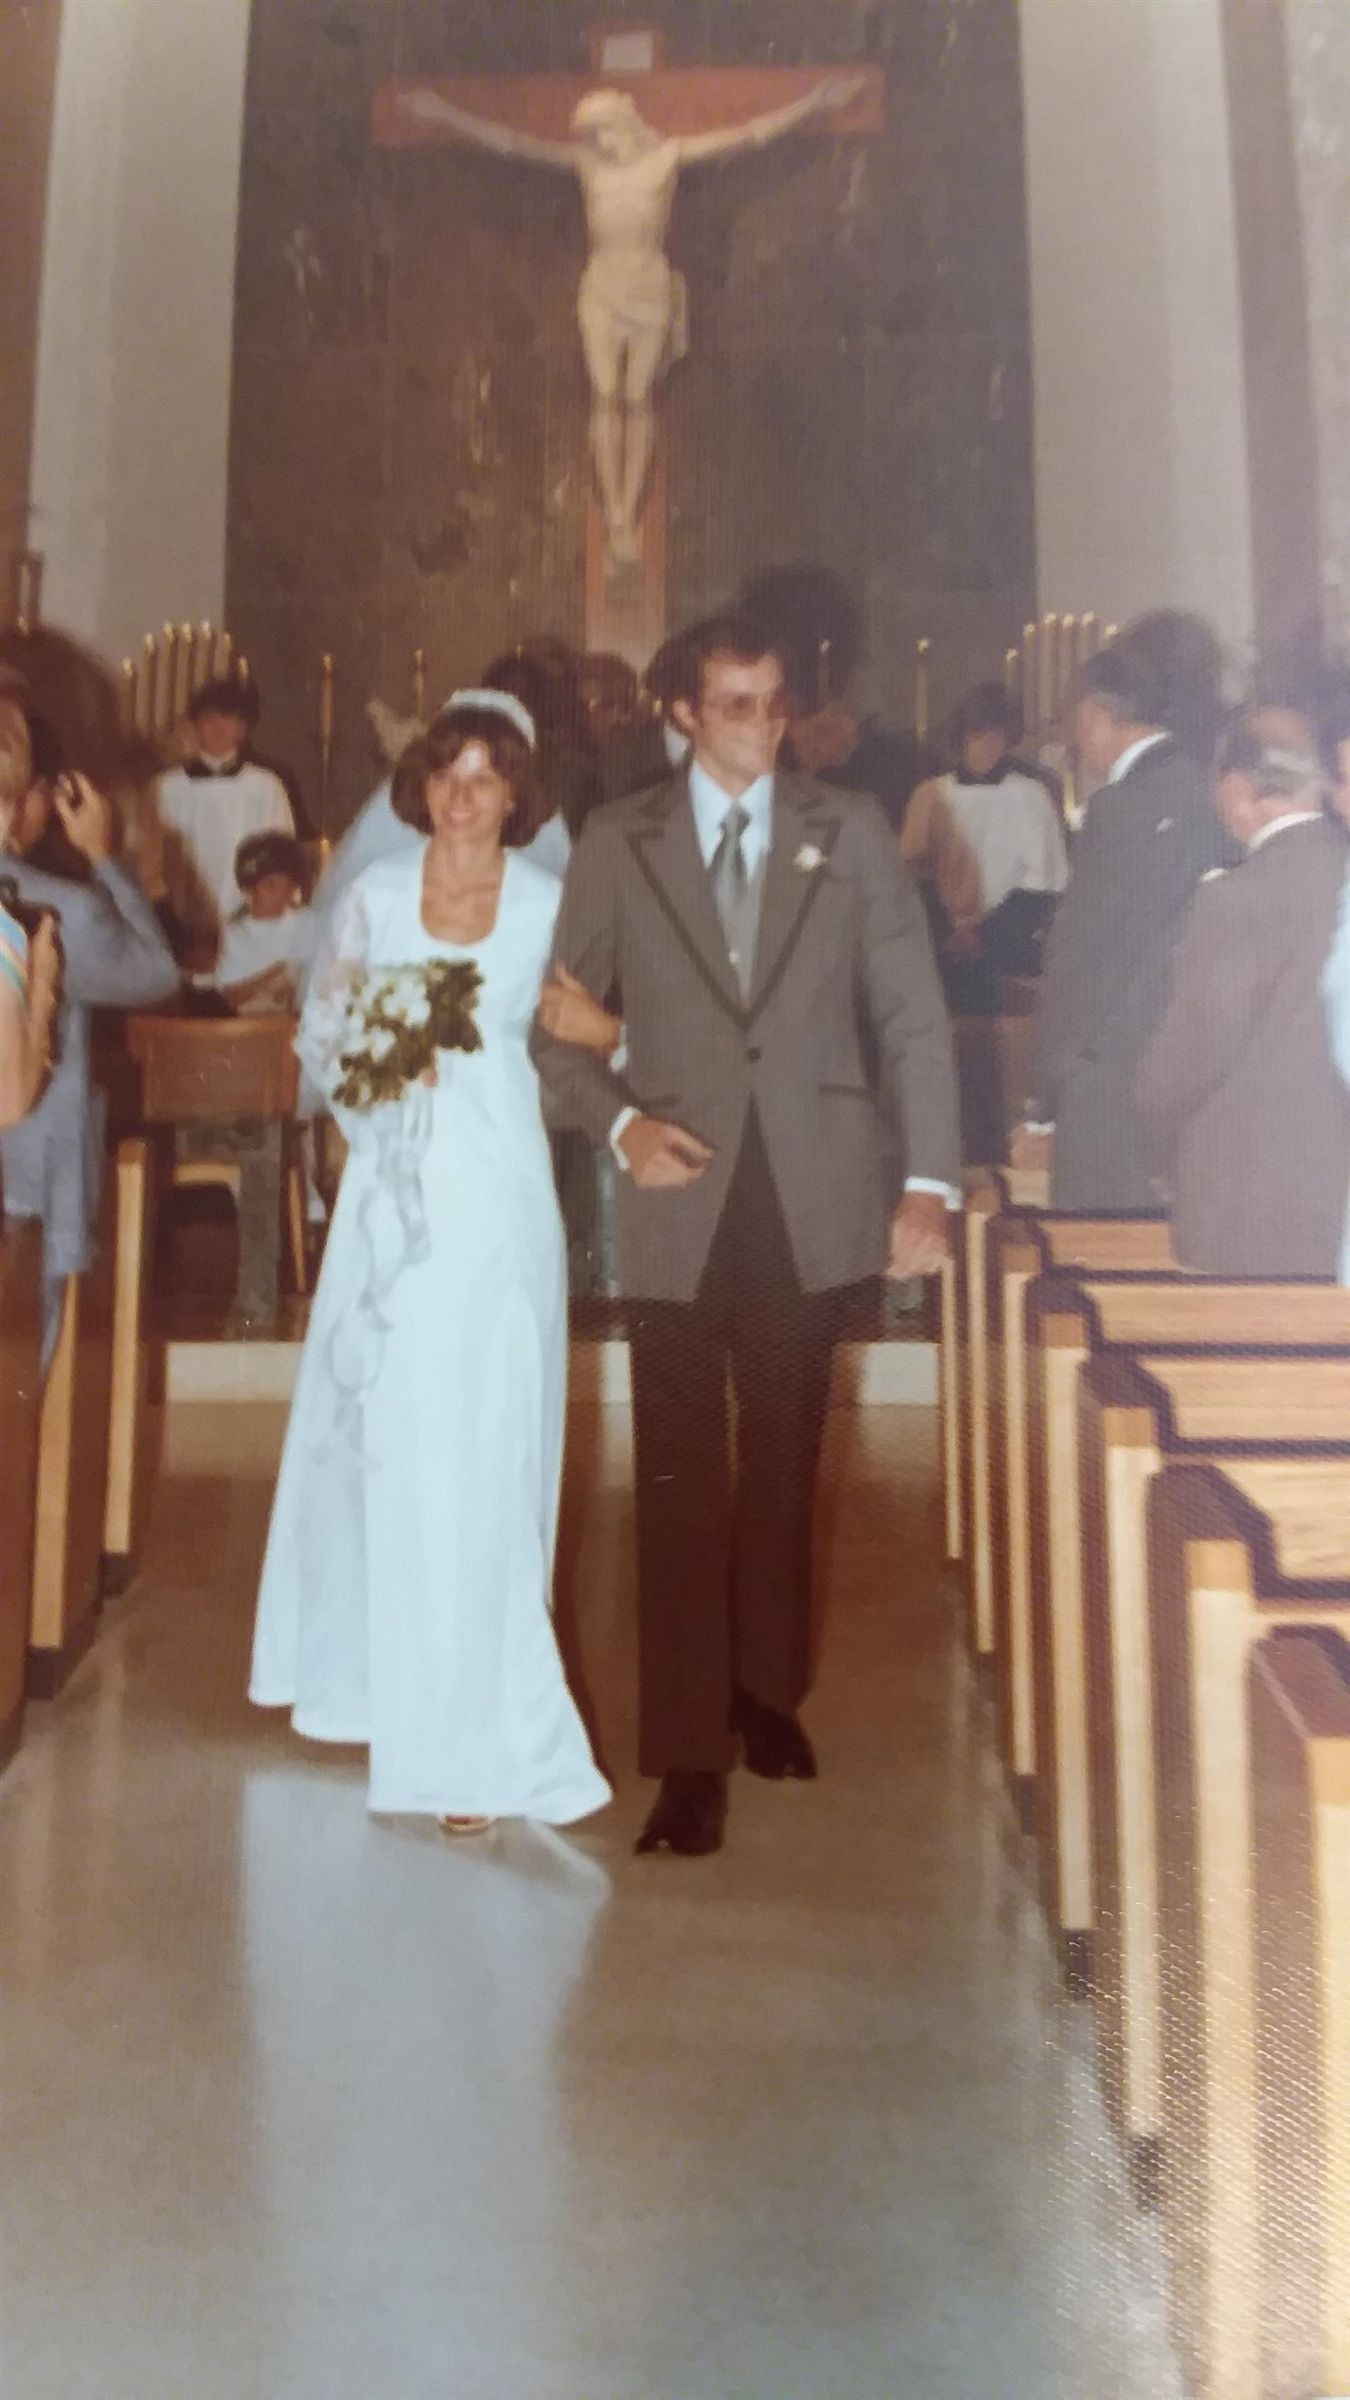 June 11, 1977: Colleen Sheehan Towle '73 and her husband of 42 years, Jerry Towle walk down the aisle.